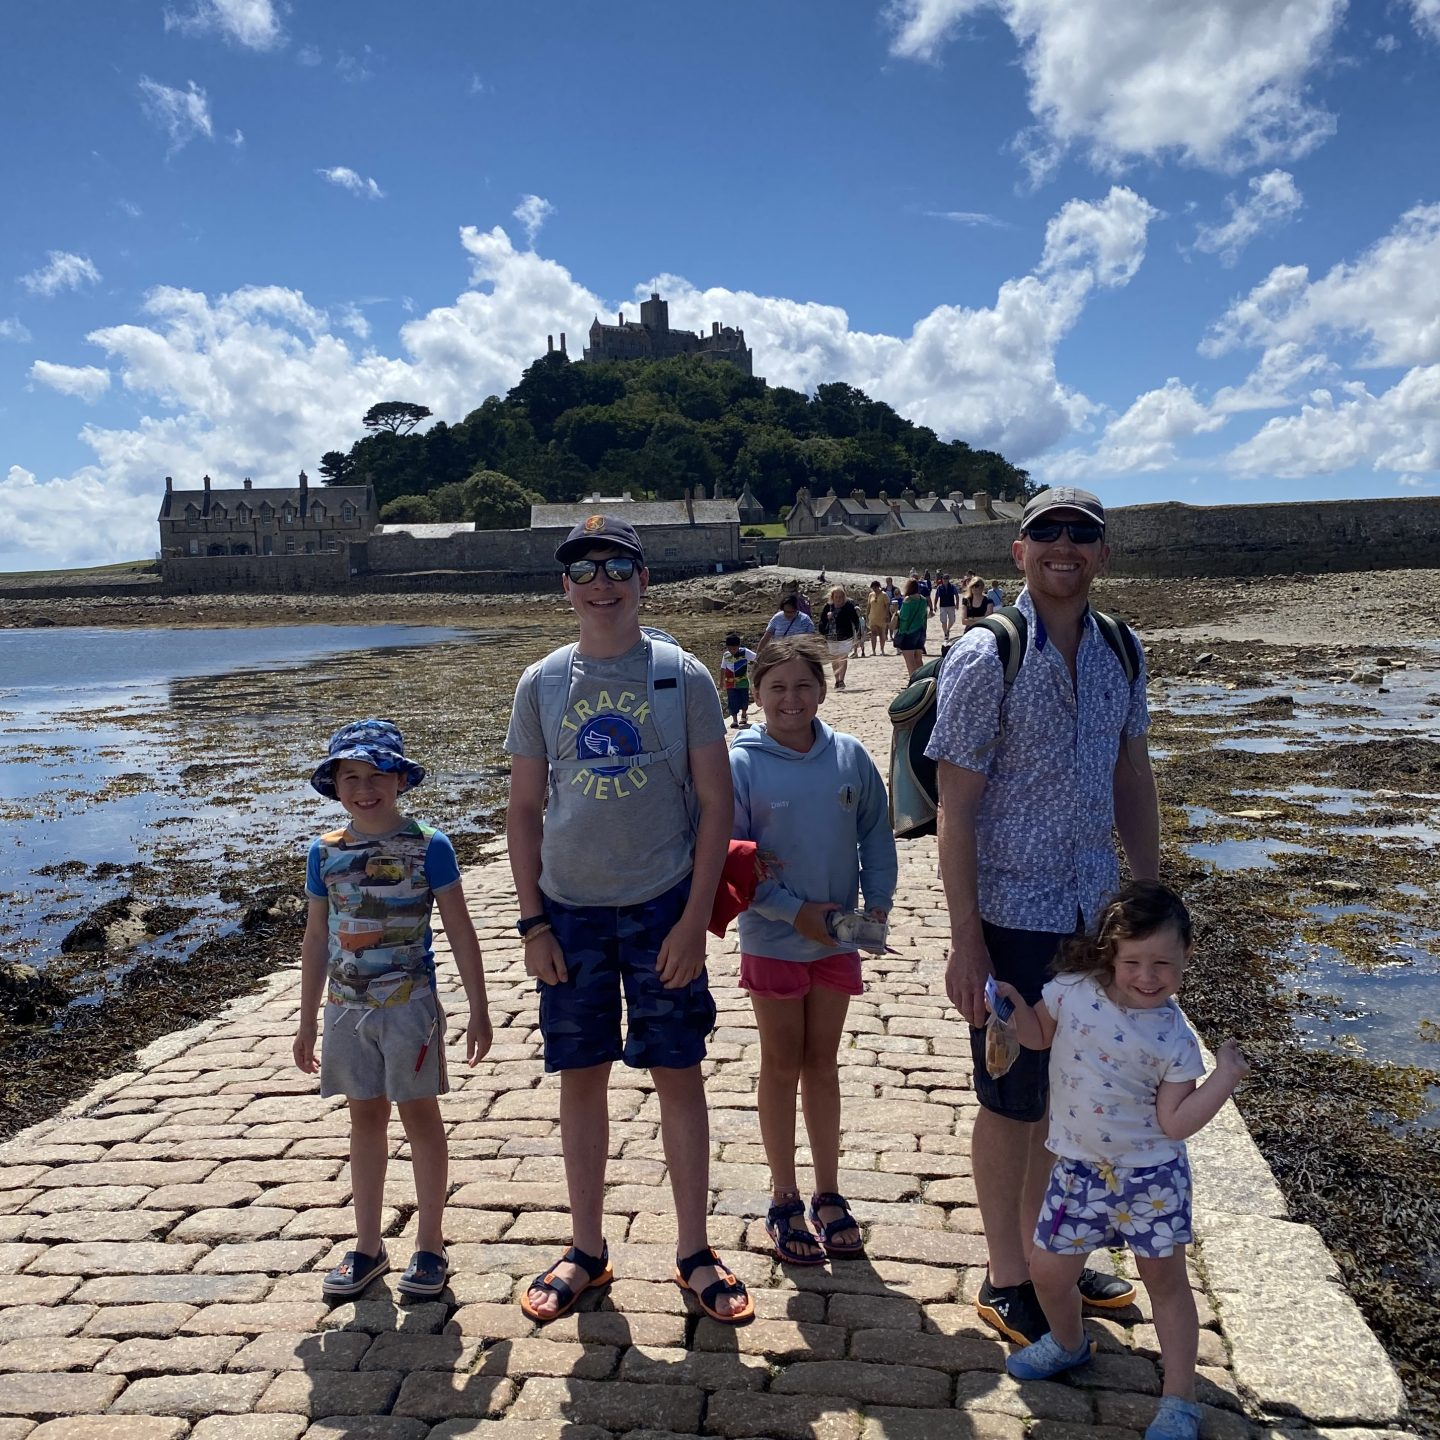 Family road trip around Devon and Cornwall St Michael's Mount with a family posing on the causeway